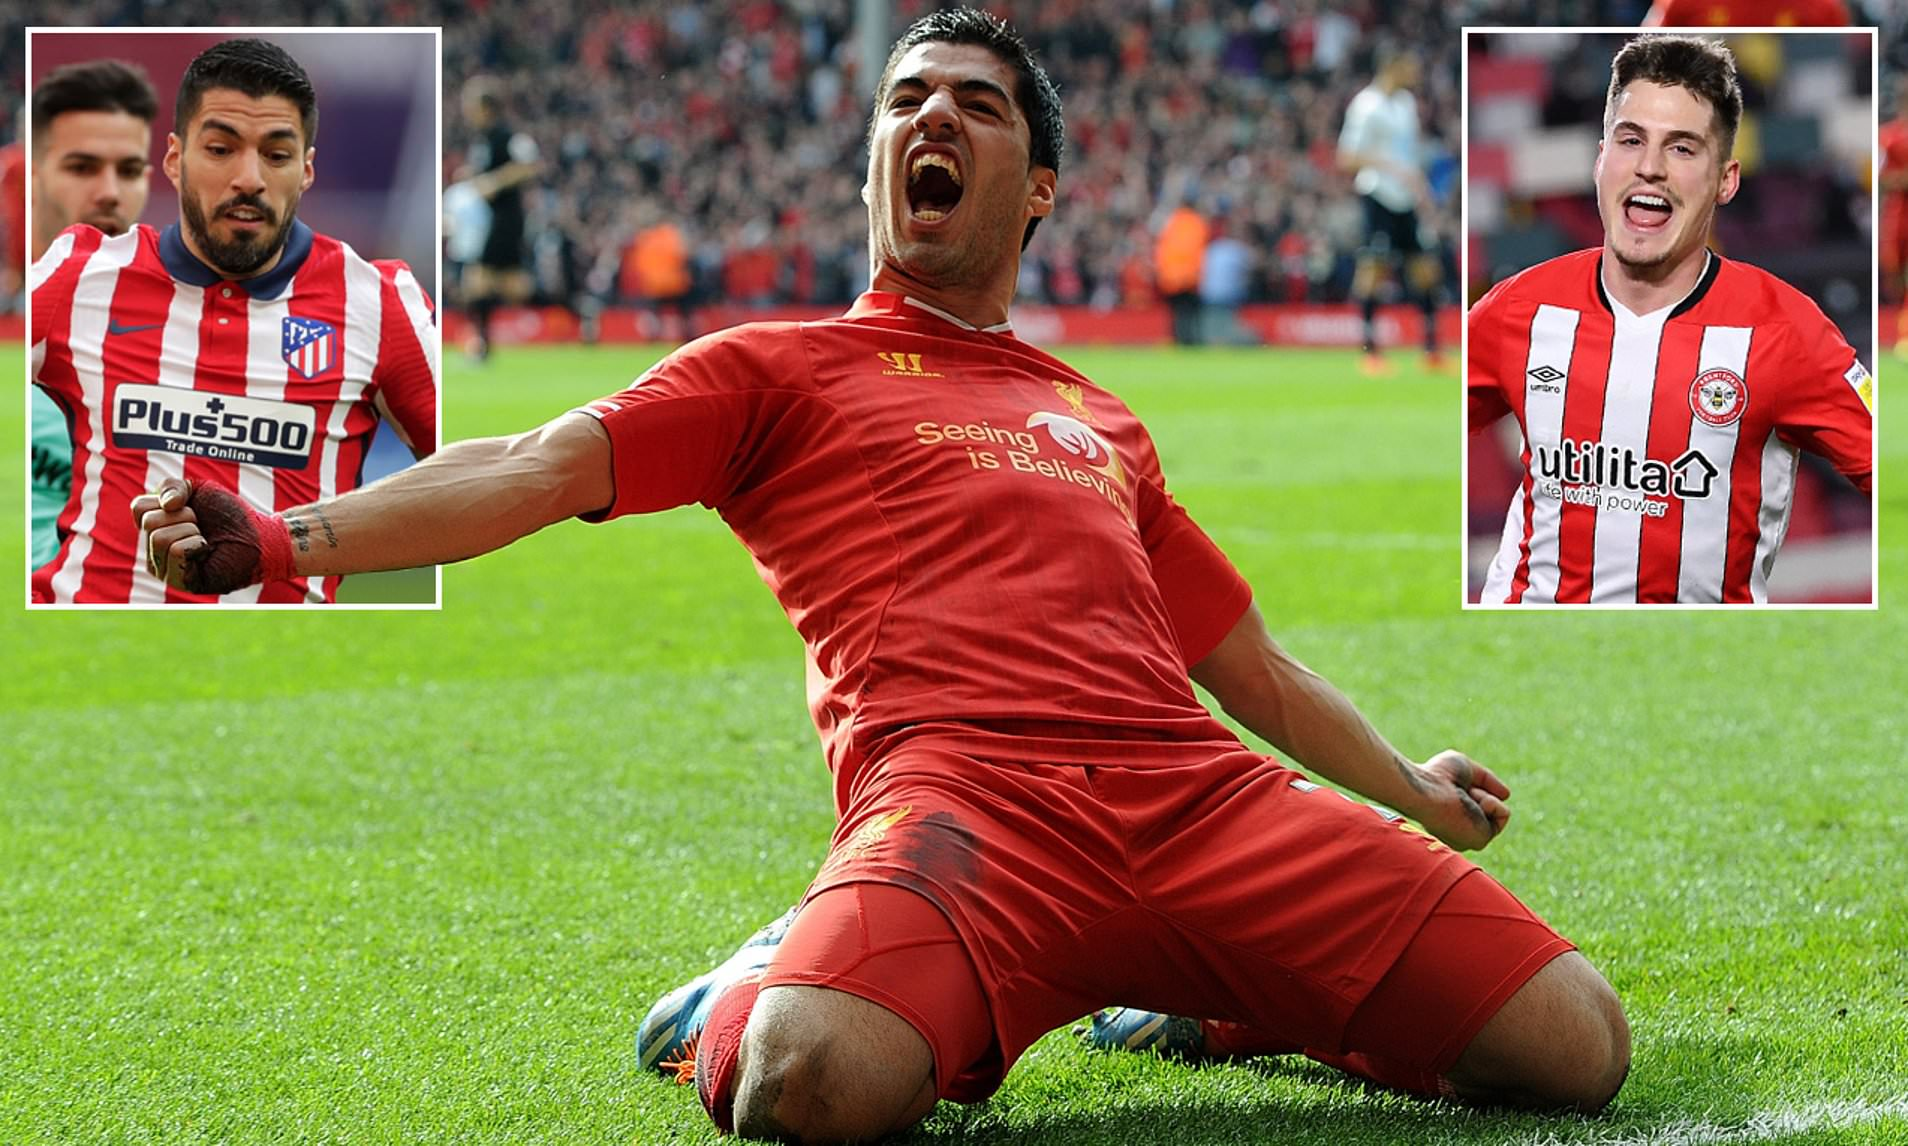 Ex-LFC youngster tells amazing story about Luis Suarez in training